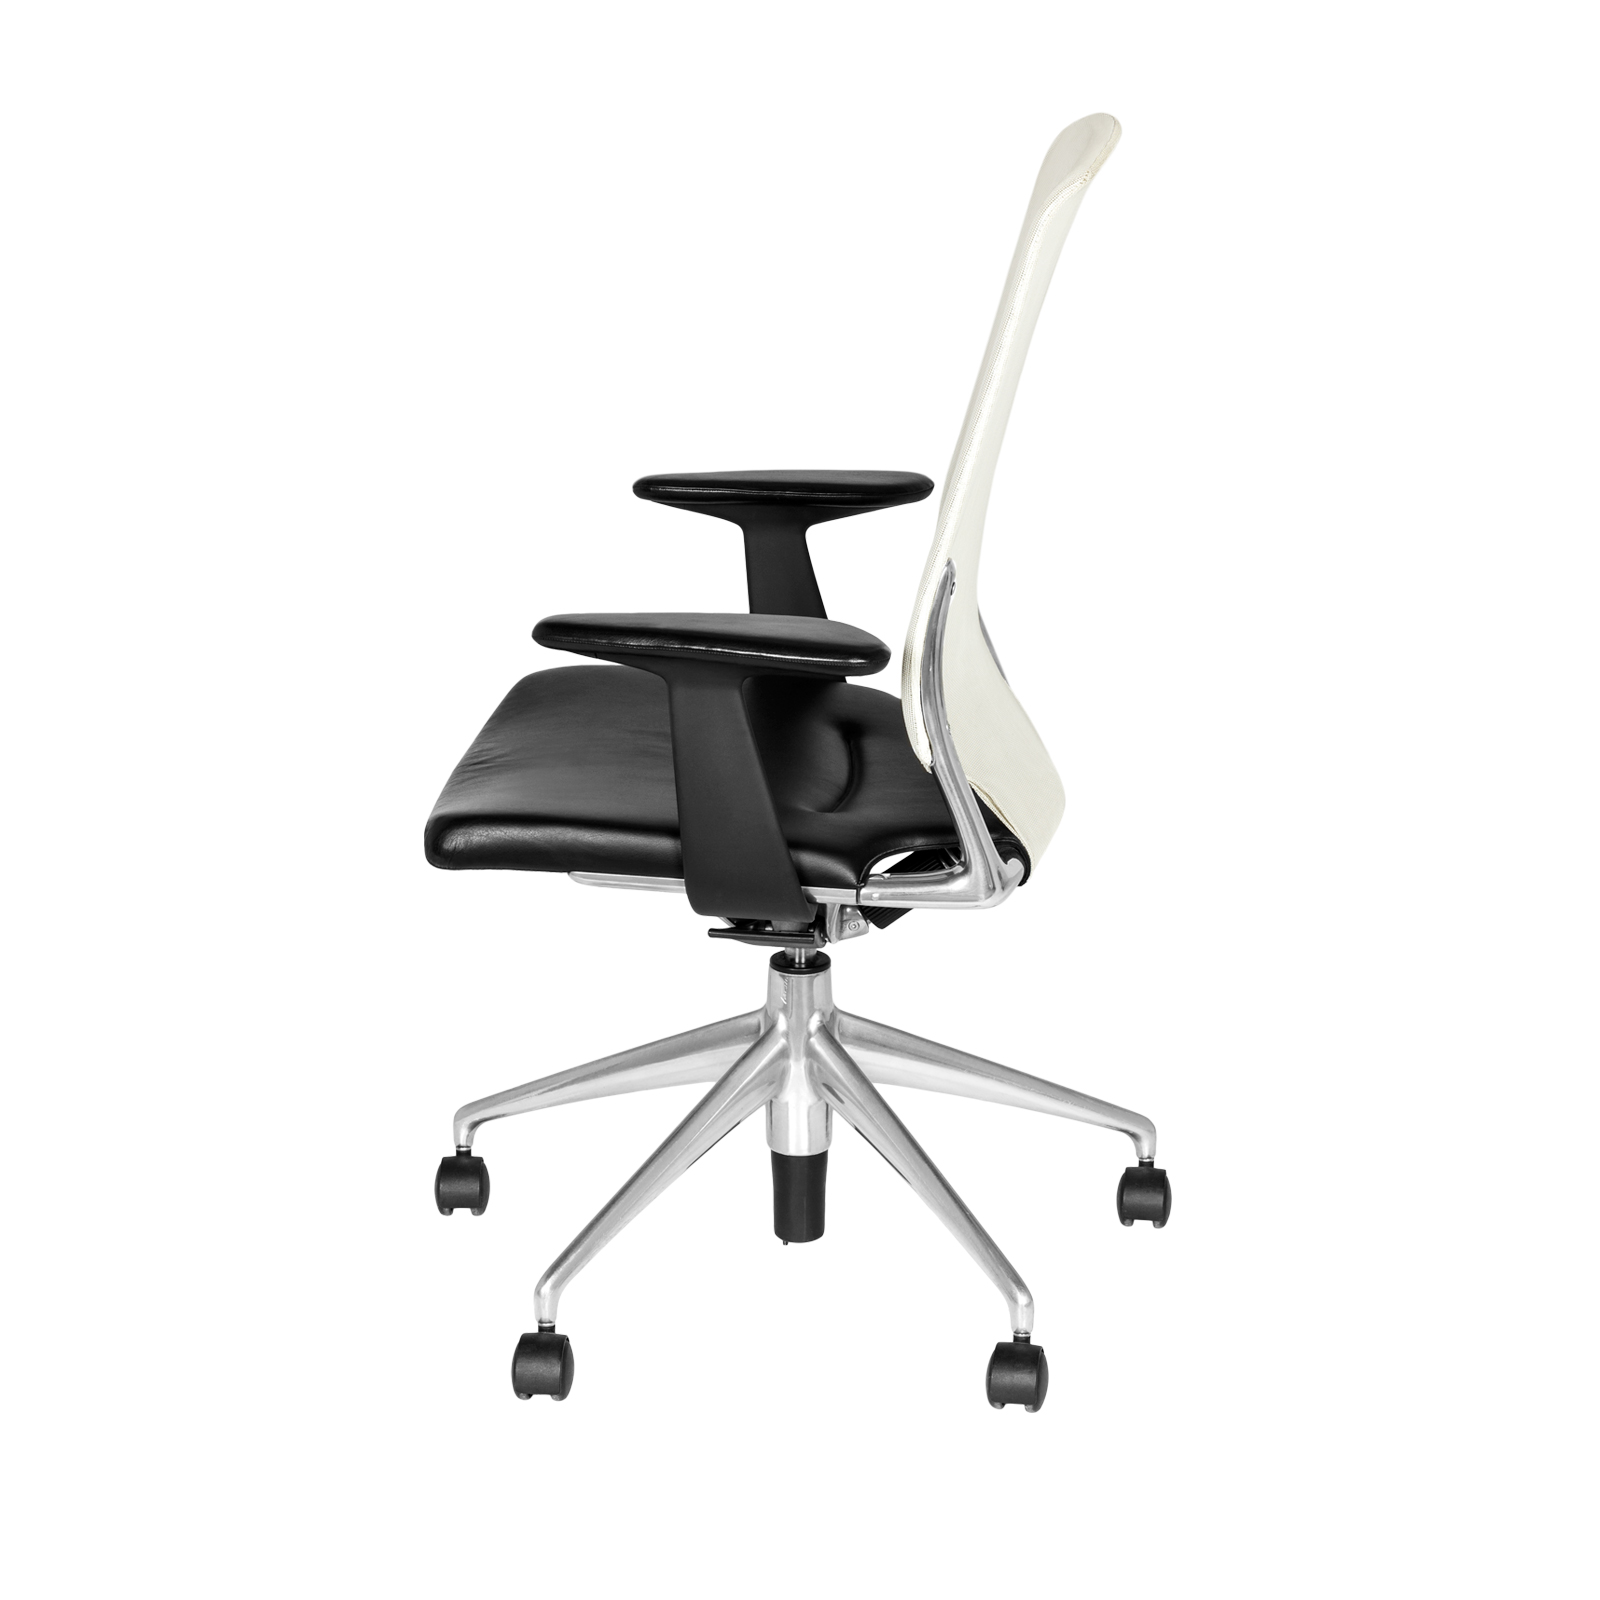 ergonomic chair rental office footrest vitra meda trade show furniture